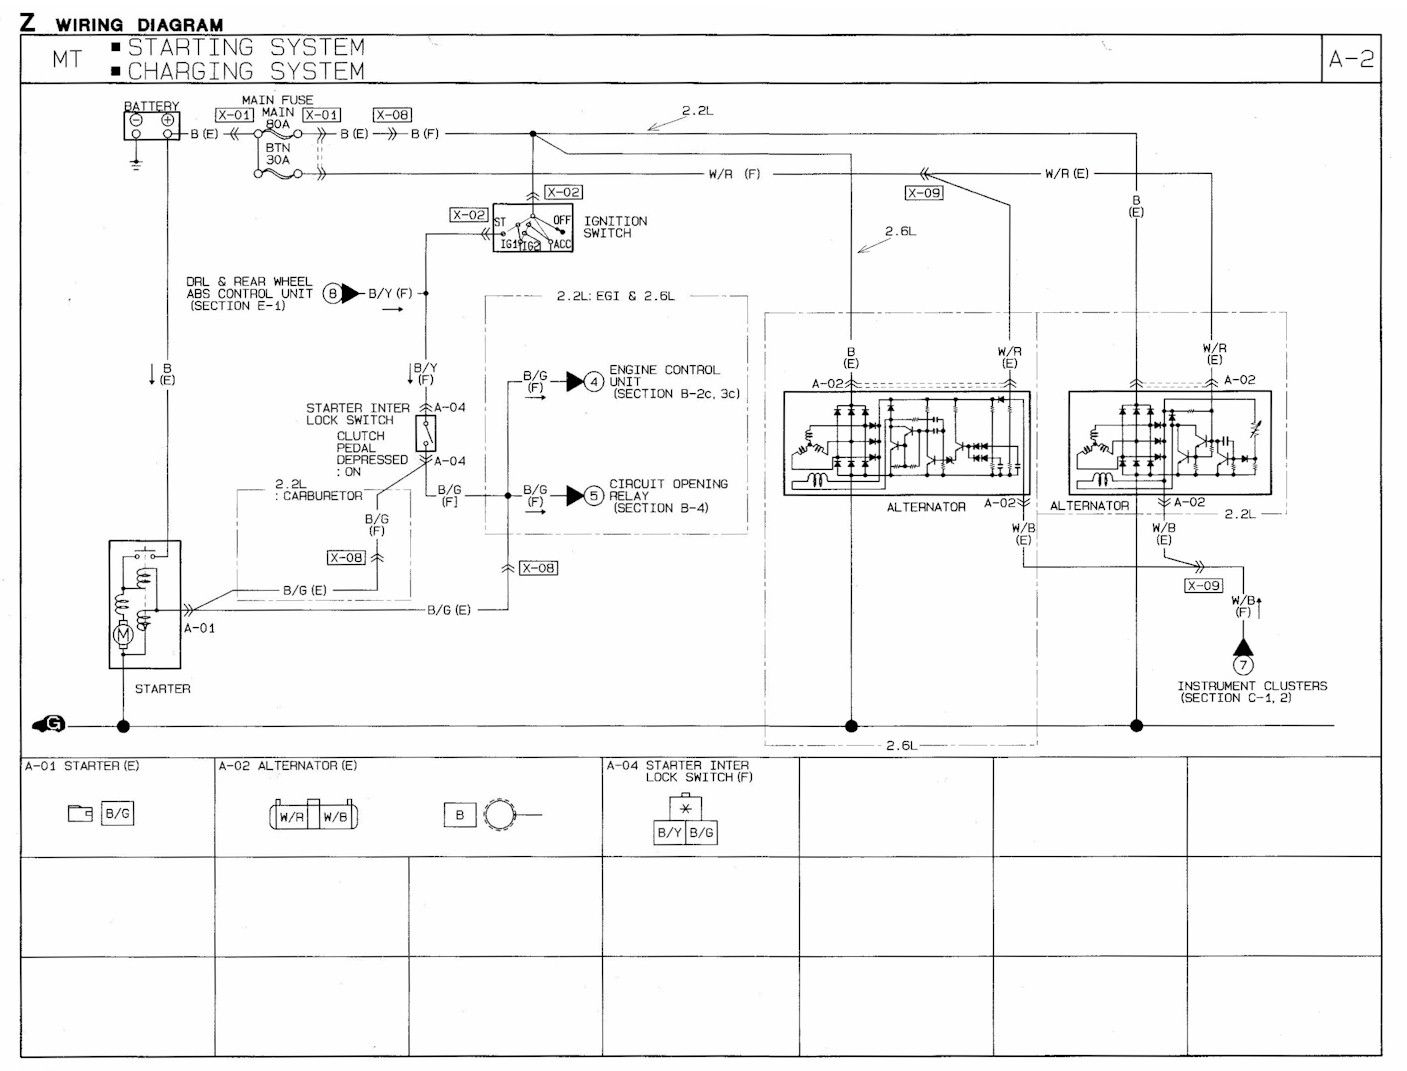 small resolution of 1991 mazda b2600i wiring diagrams wiring diagram for professional u2022 1991 mazda b2600 stereo wiring diagram b2600 mazda stereo wiring